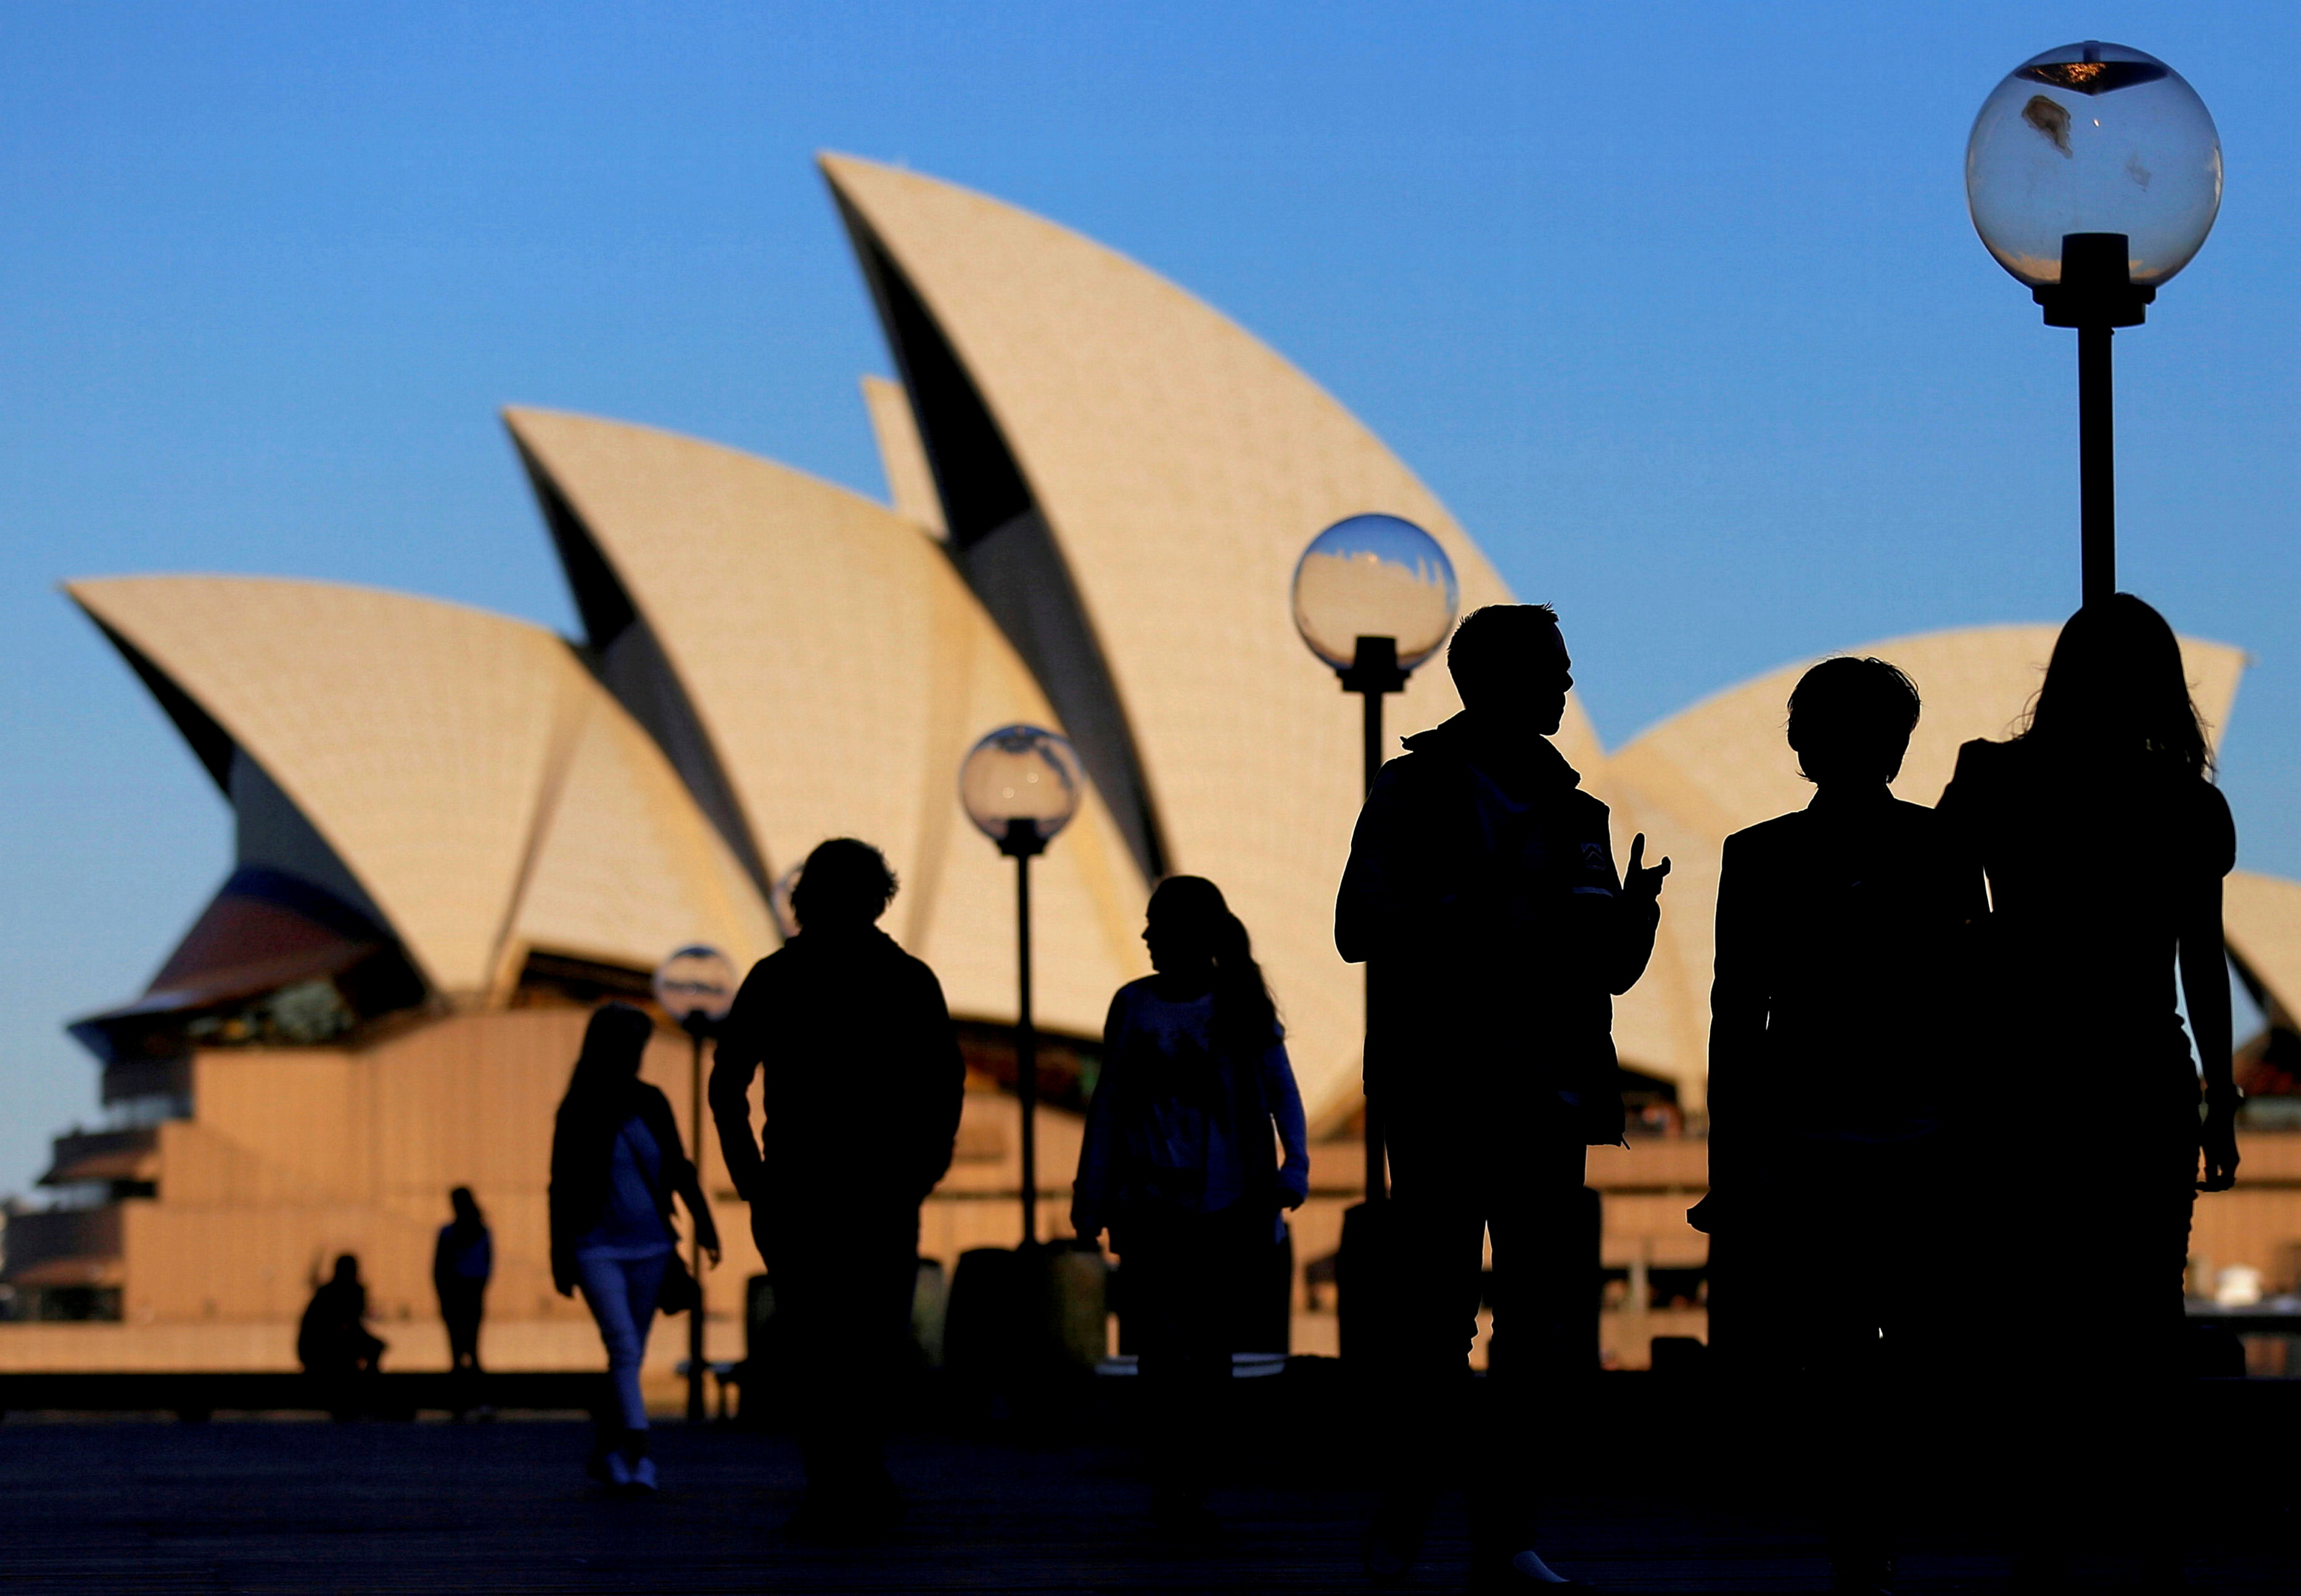 People are silhouetted against the Sydney Opera House at sunset in Australia, November 2, 2016. REUTERS/Steven Saphore